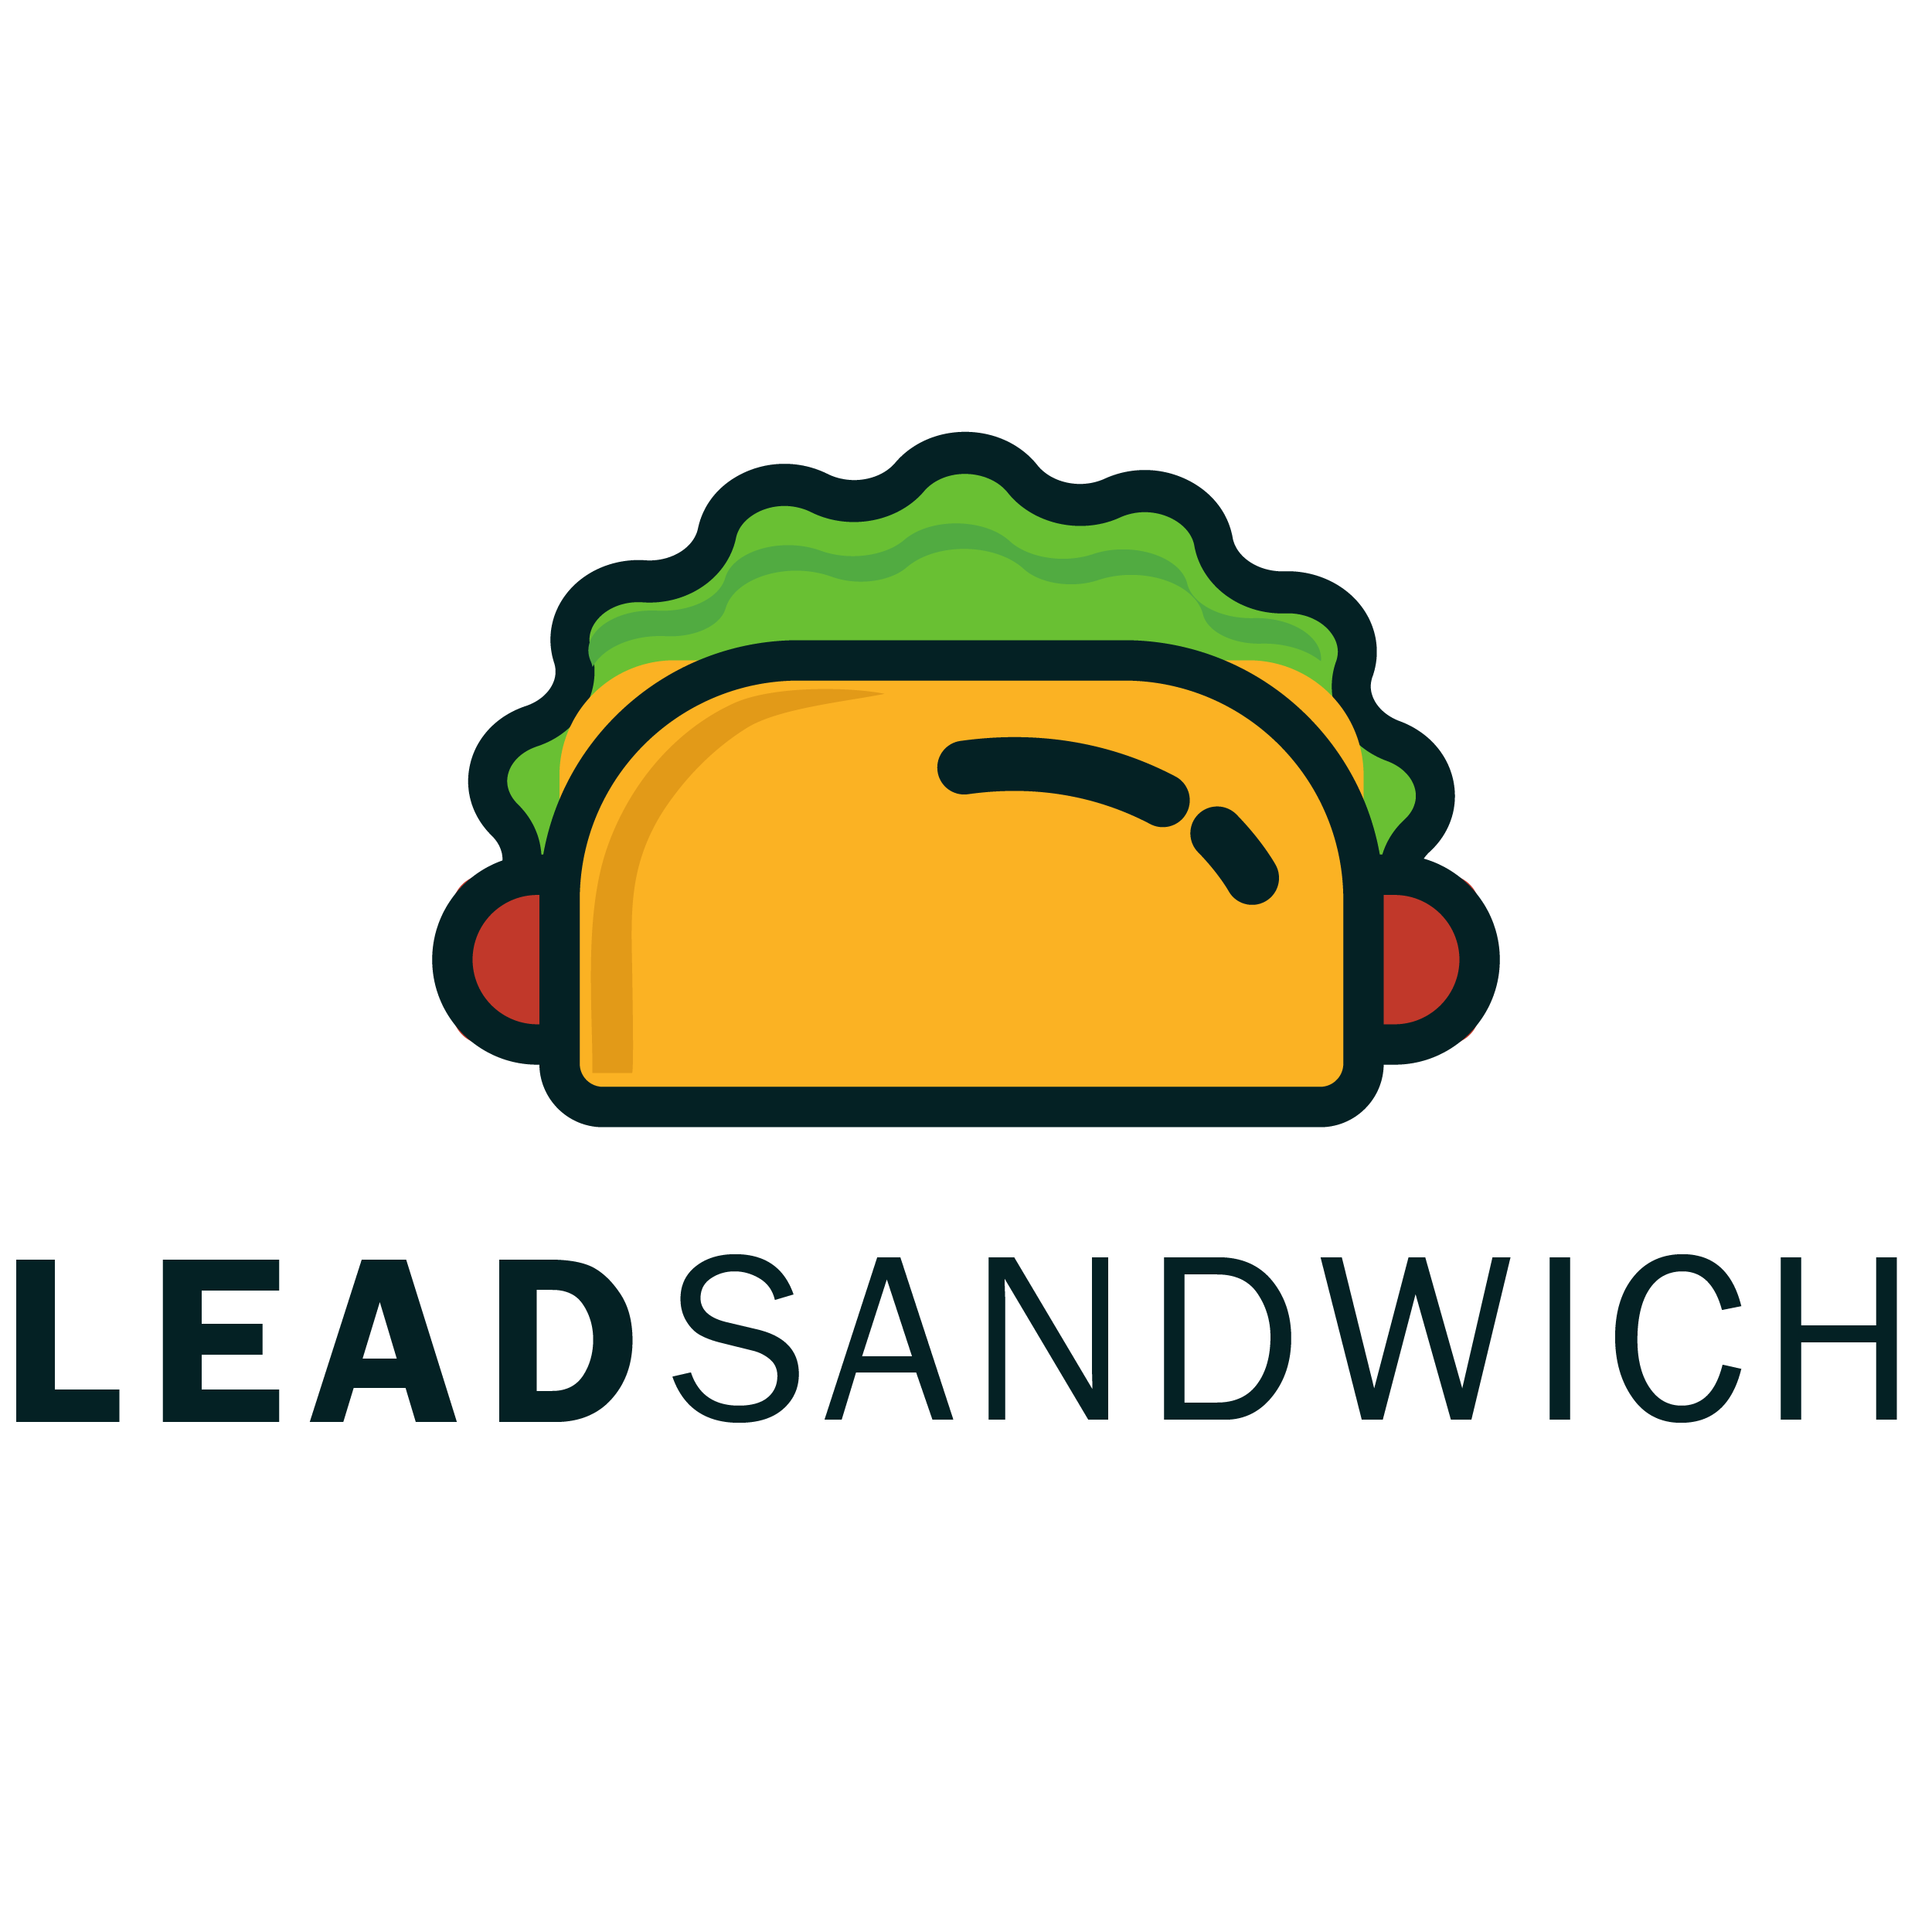 leadsandwich